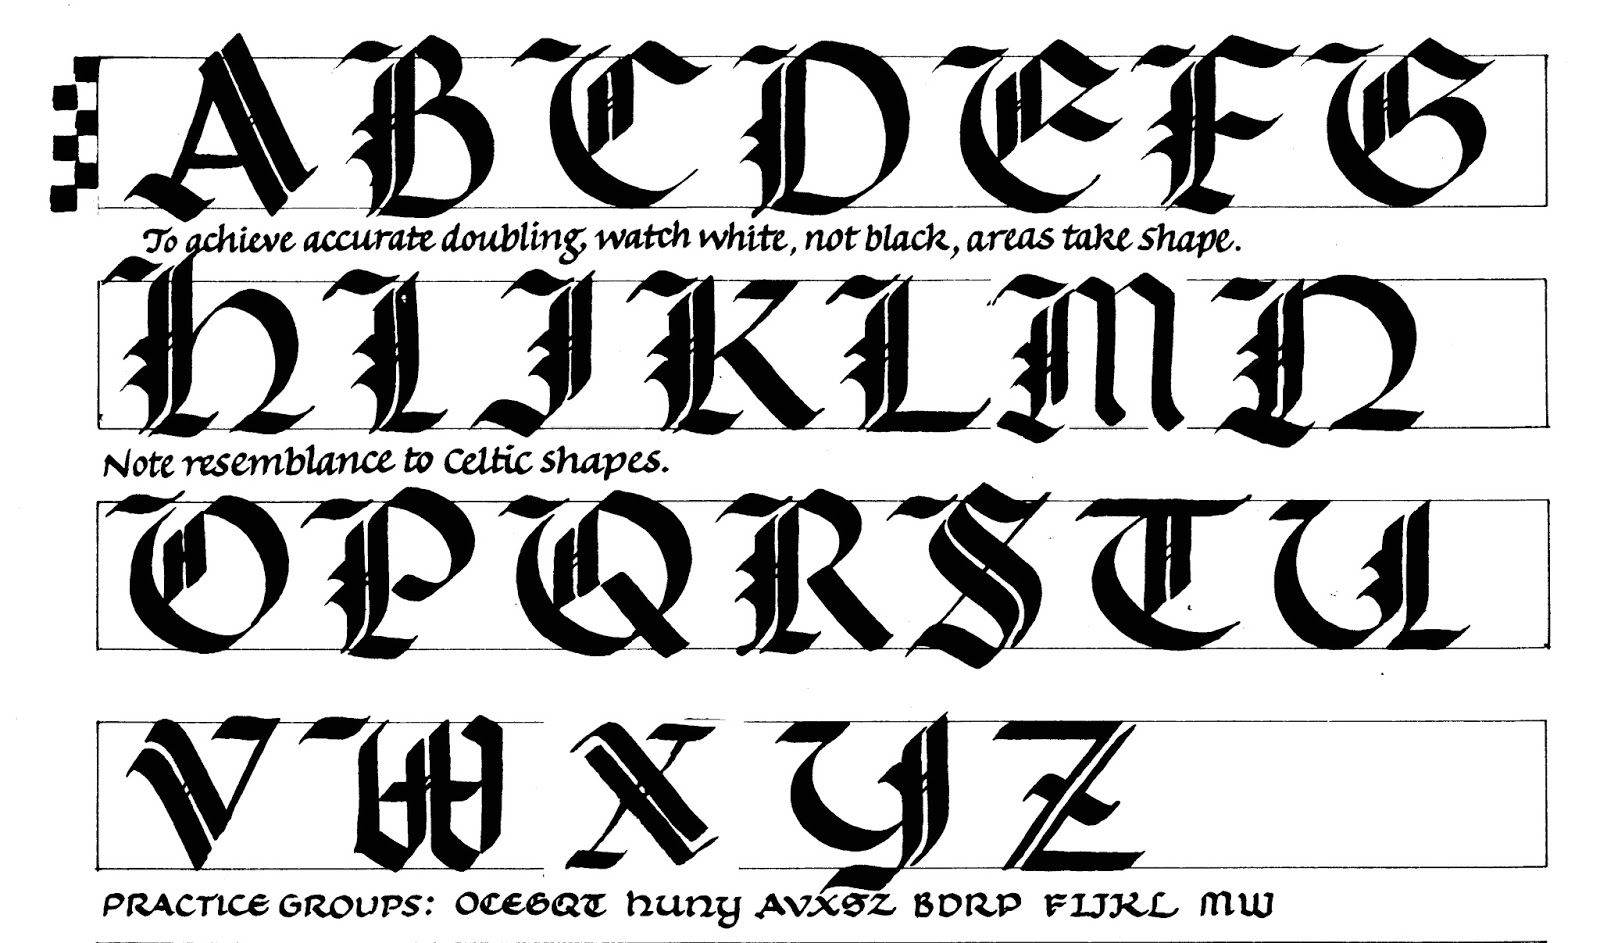 Casual Handwritten Cursive Uppercase Lowercase Stencils further Clipart Fancy Underline further Sports Stencils in addition Versalien Initialaufkleber Schriftbild Old English additionally Two Different Calligraphic Font Styles In Math Mode. on cool letter and number designs